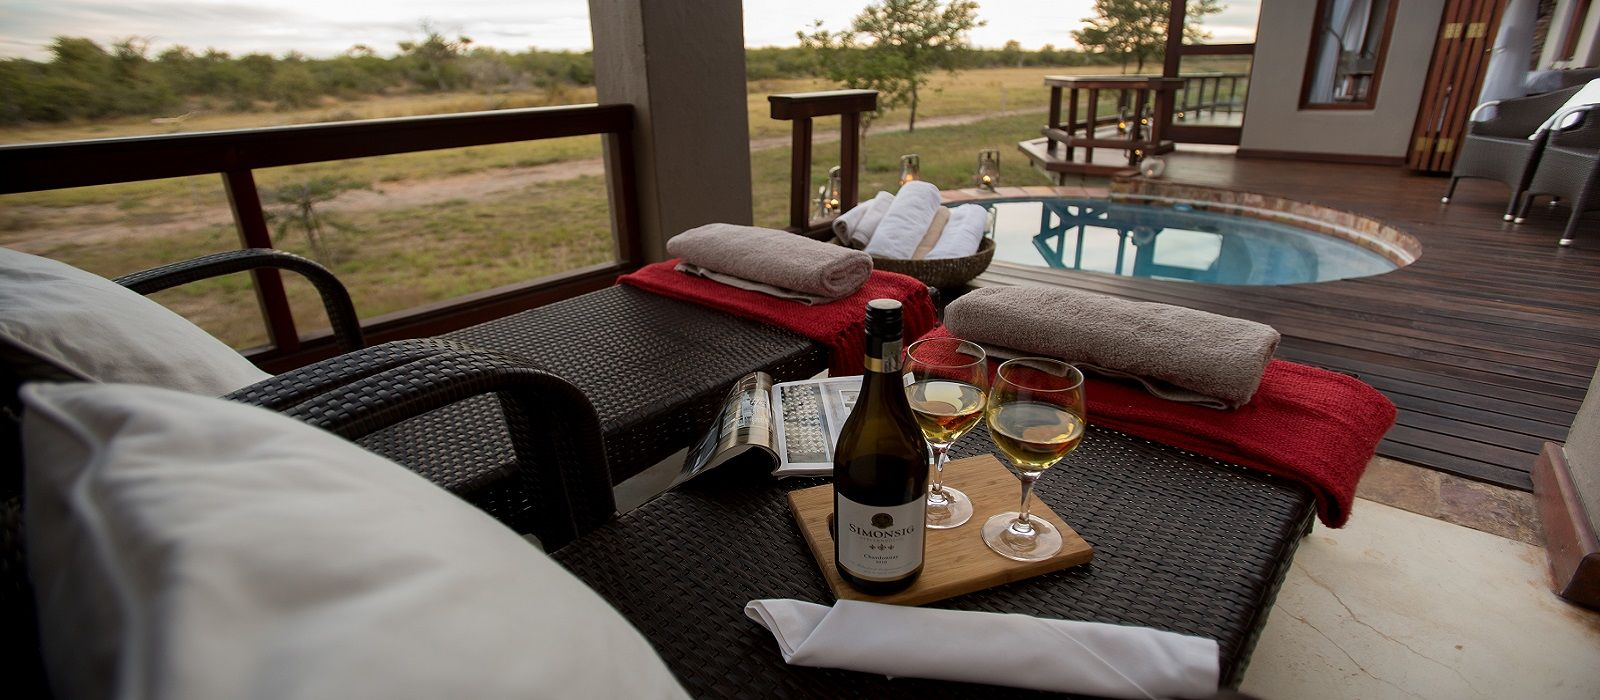 Hotel Jamala Madikwe Royal Safari Lodge South Africa